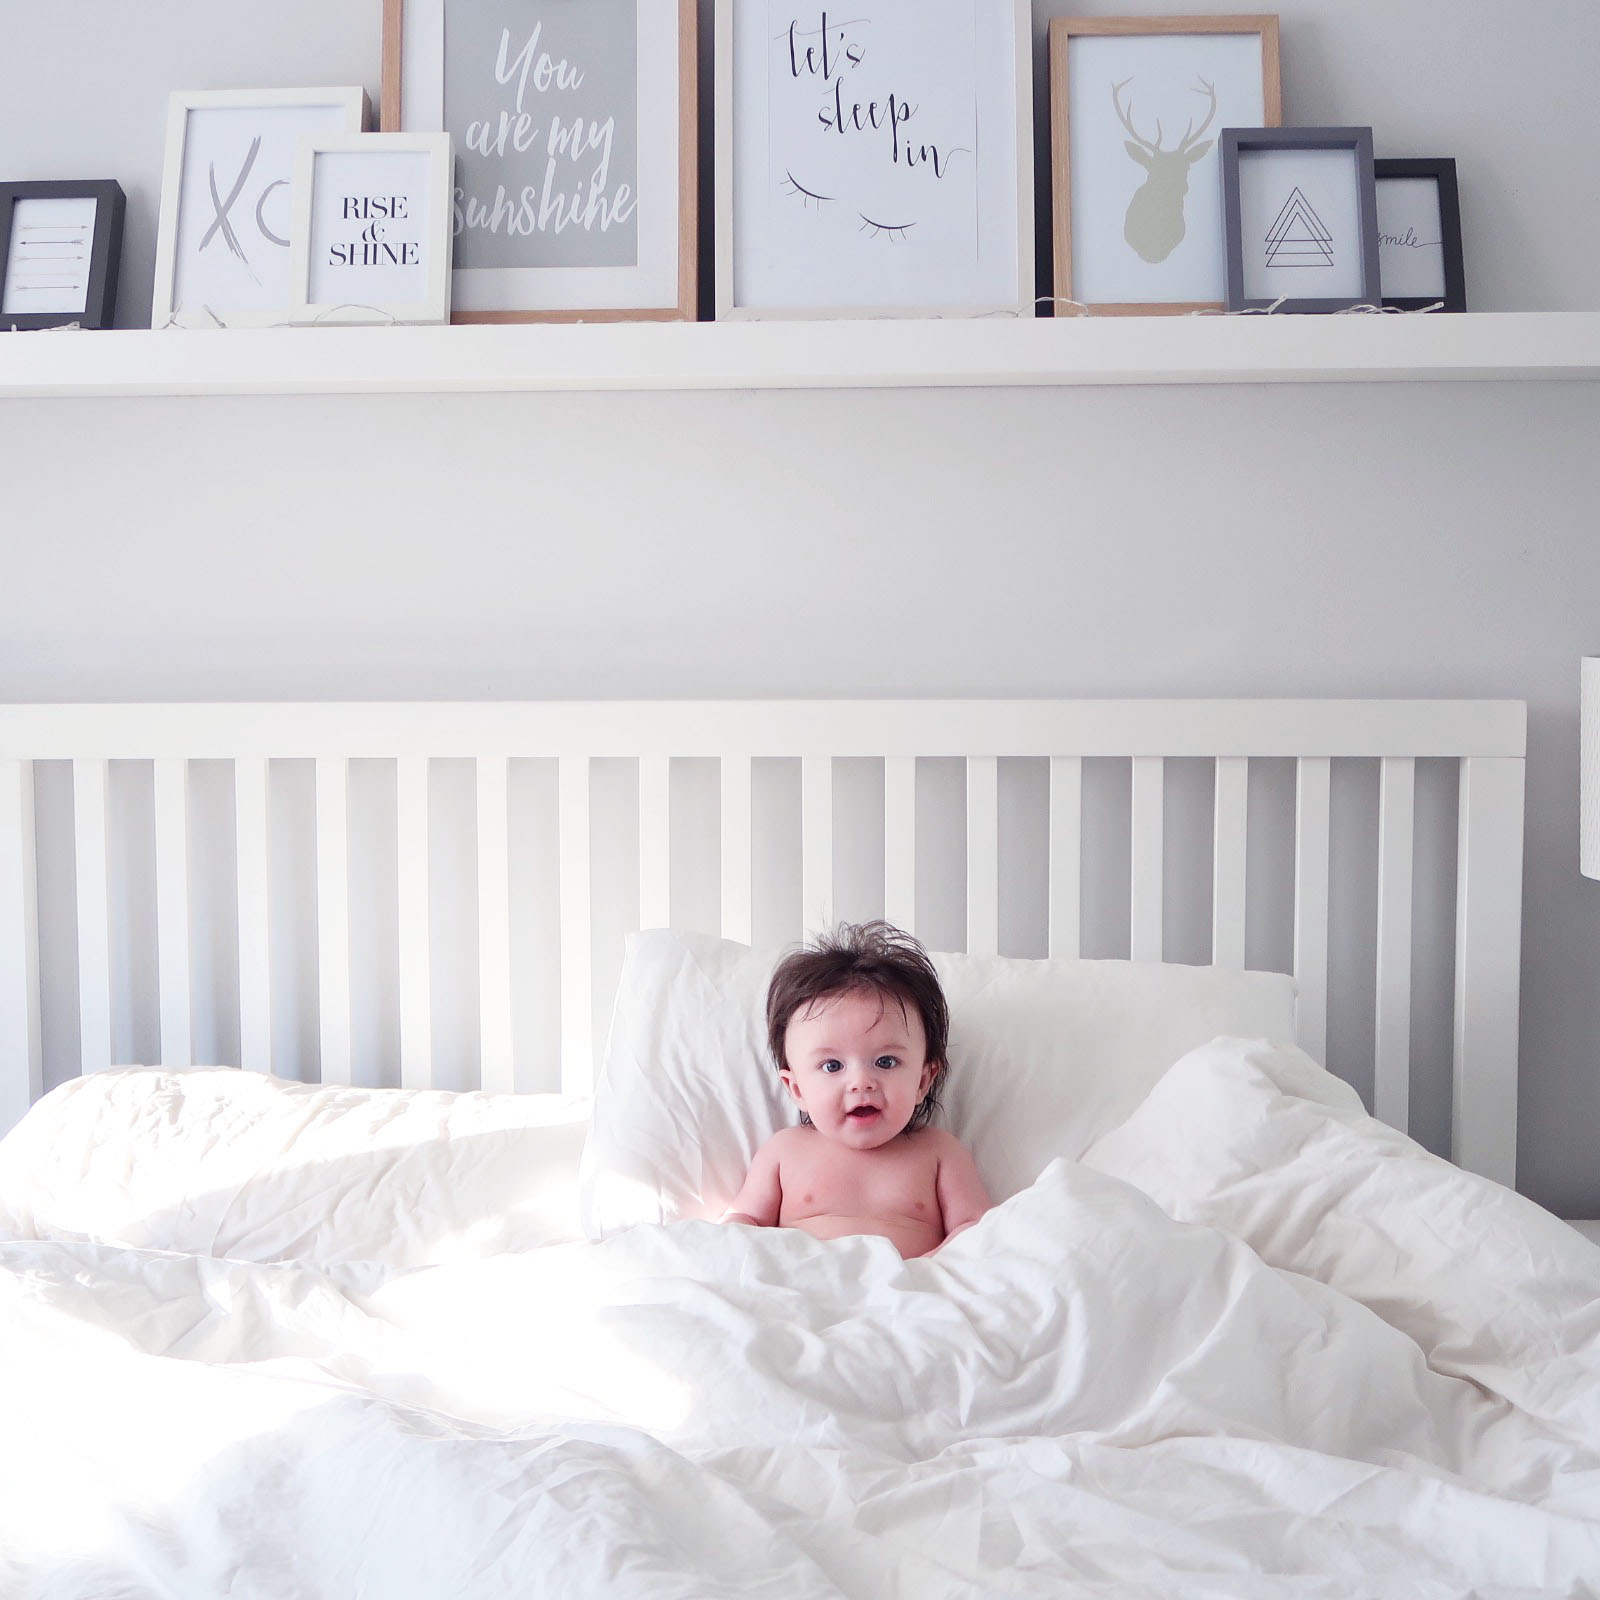 Maisy Meow Lifestyle and Parenting Blogger Baby on bed photoshoot